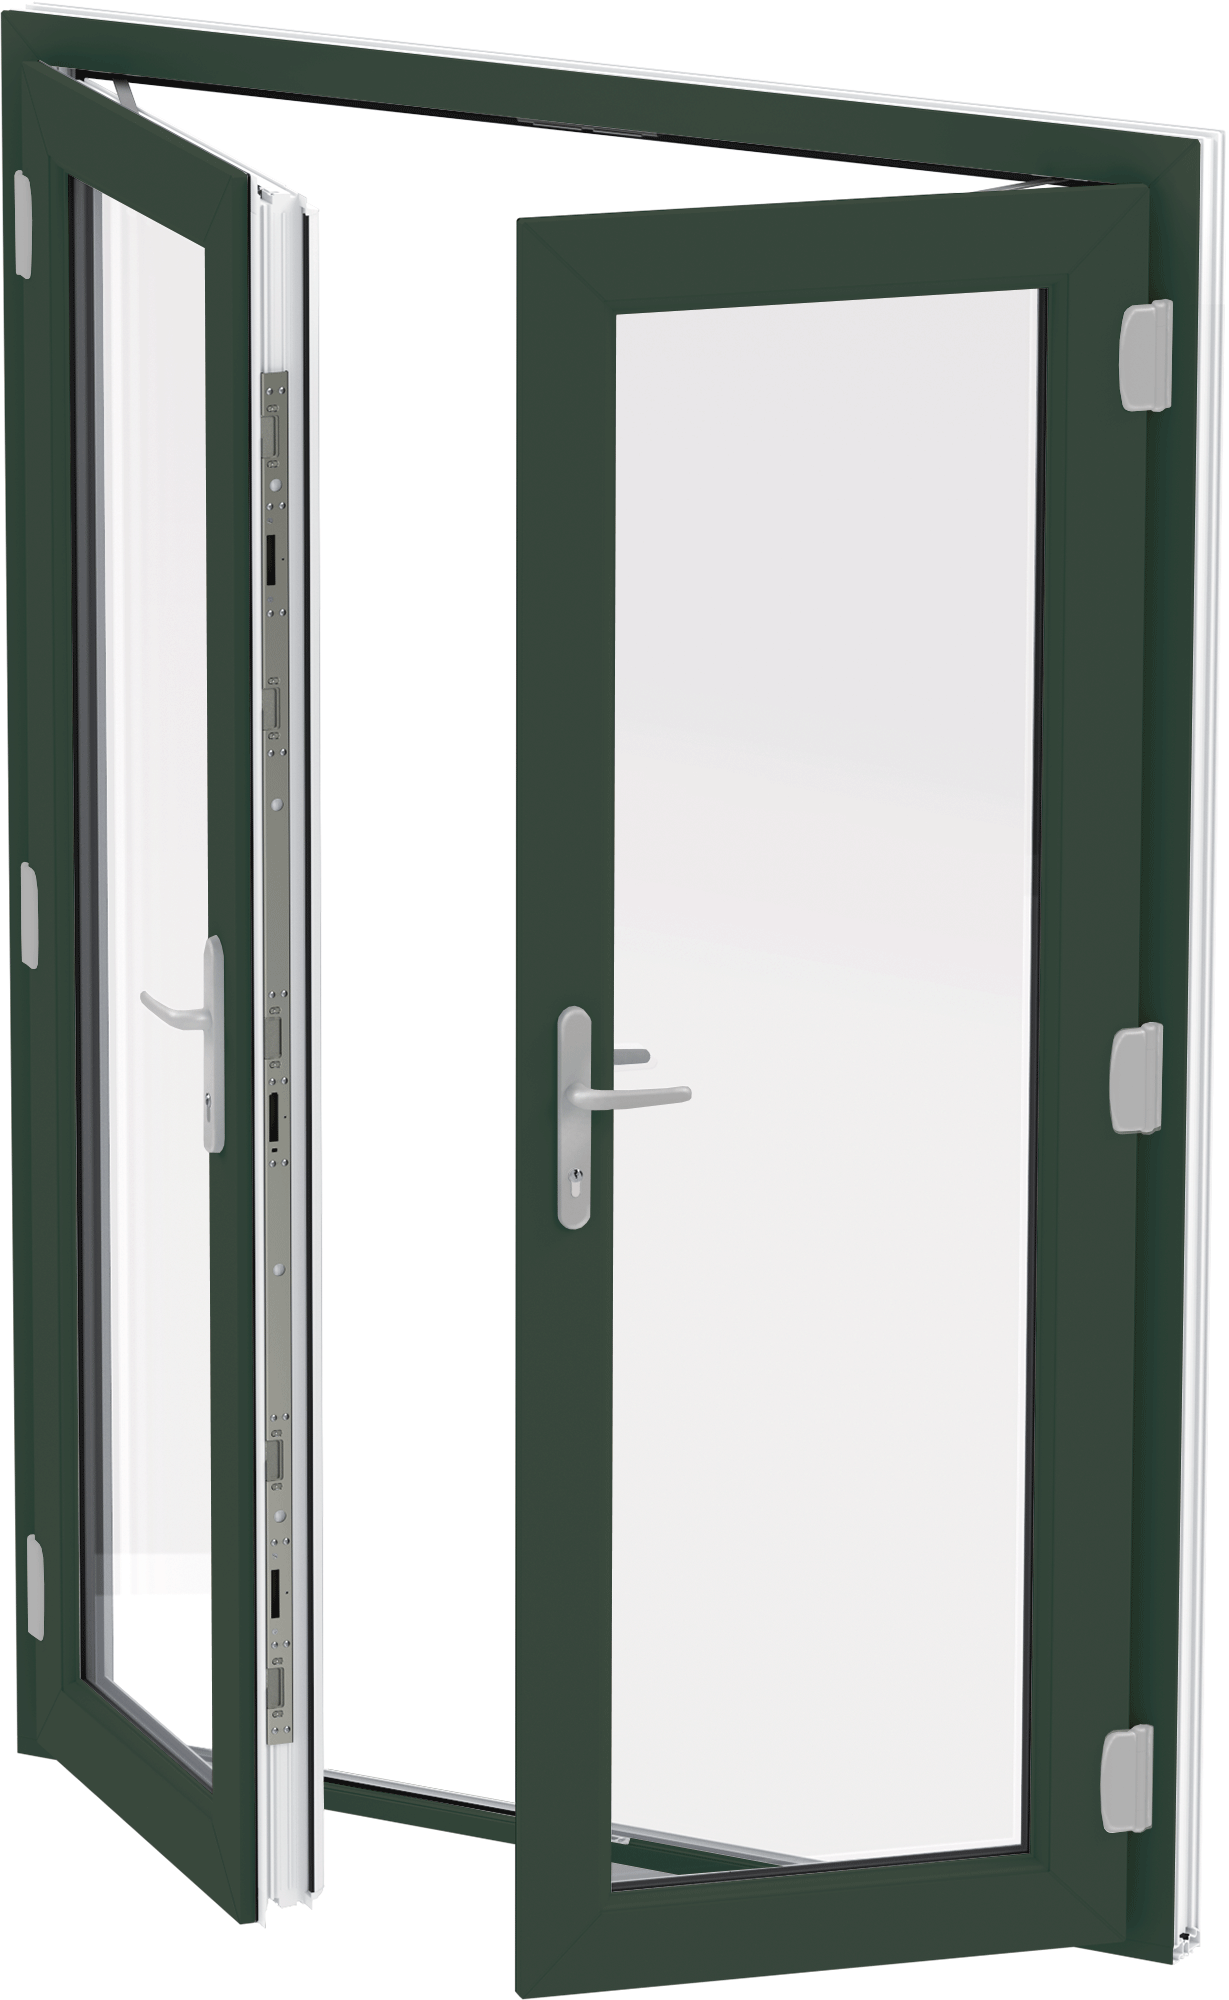 S For Upvc French Doors And A Fast Lead Time We Do This To Help You Manage Your Business Plan Work Schedule Liaise With Customers